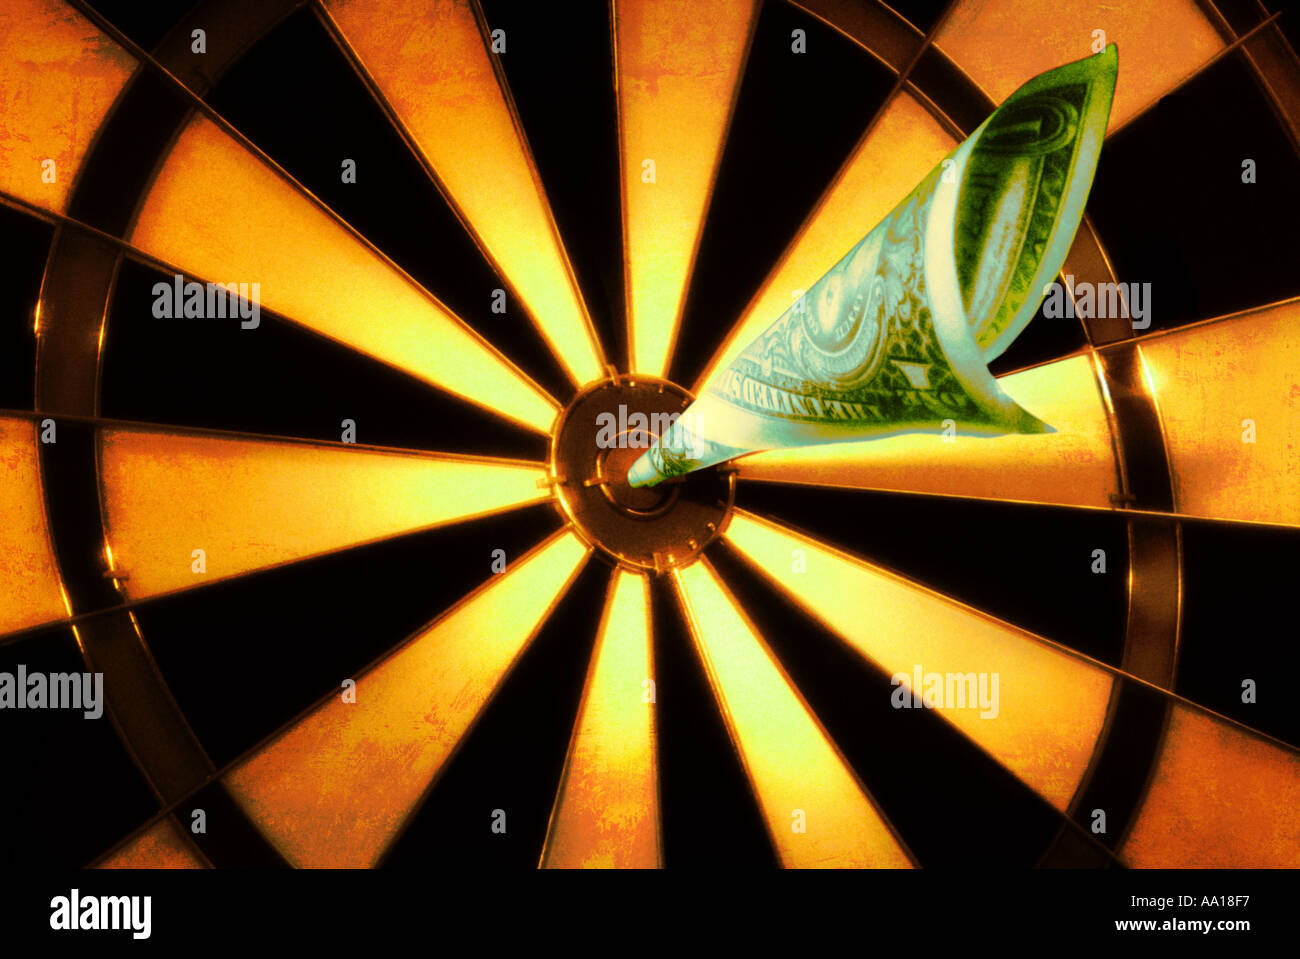 Us one dollar bill shaped as a dart hitting bullseye of target stock us one dollar bill shaped as a dart hitting bullseye of target thecheapjerseys Images